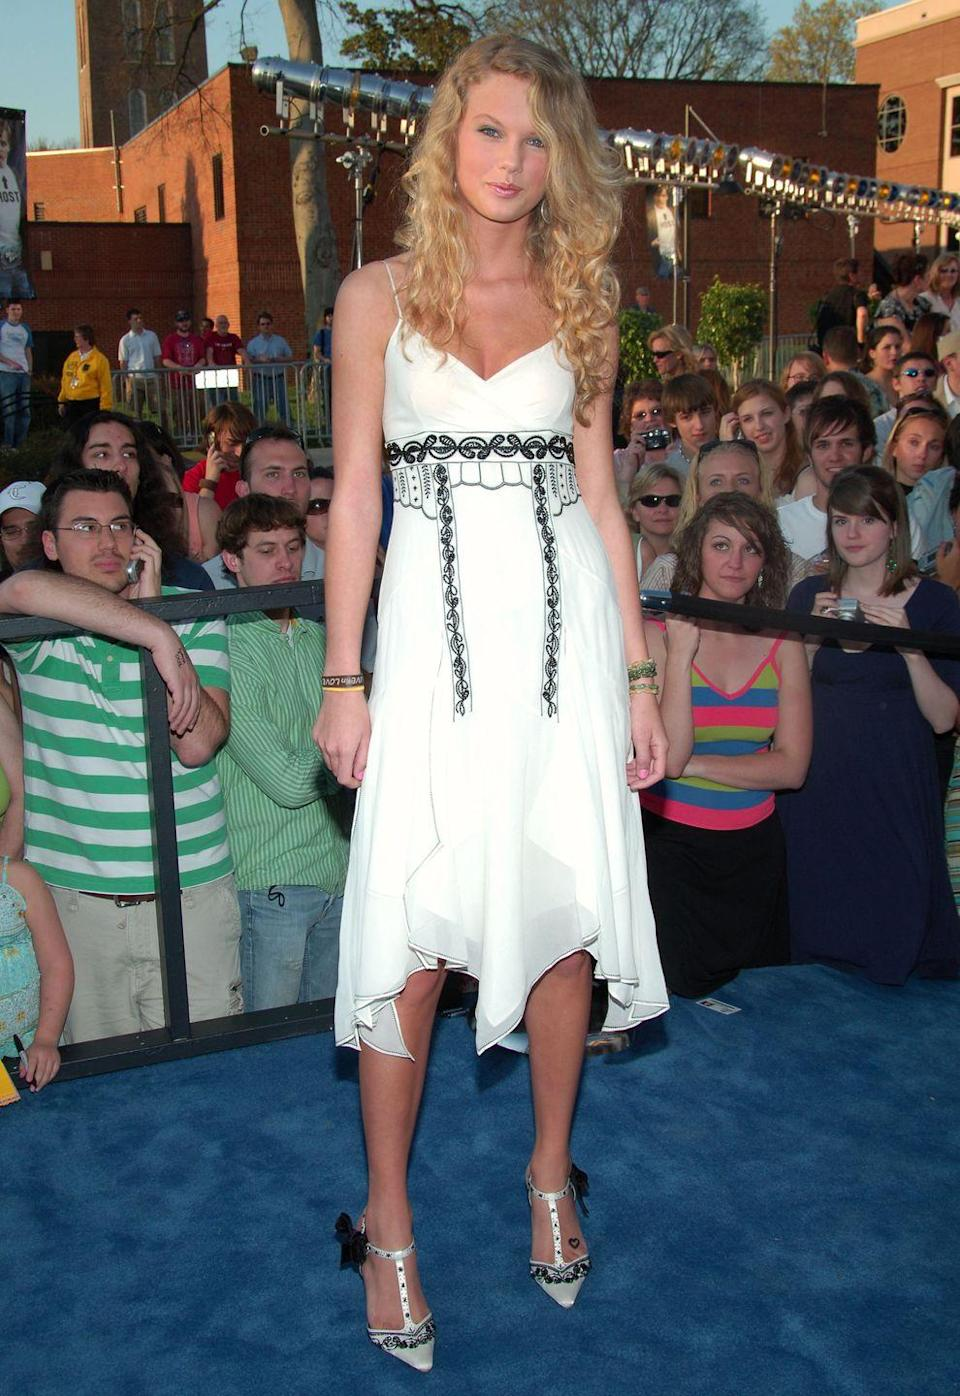 <p>In 2006, Taylor Swift was a country music singer known for her blonde curls, princess dresses, and hit songs about losing the love of her life or not being able to live up to the high school cheerleaders. Endearing and relatable, Swift was country music's darling. </p>